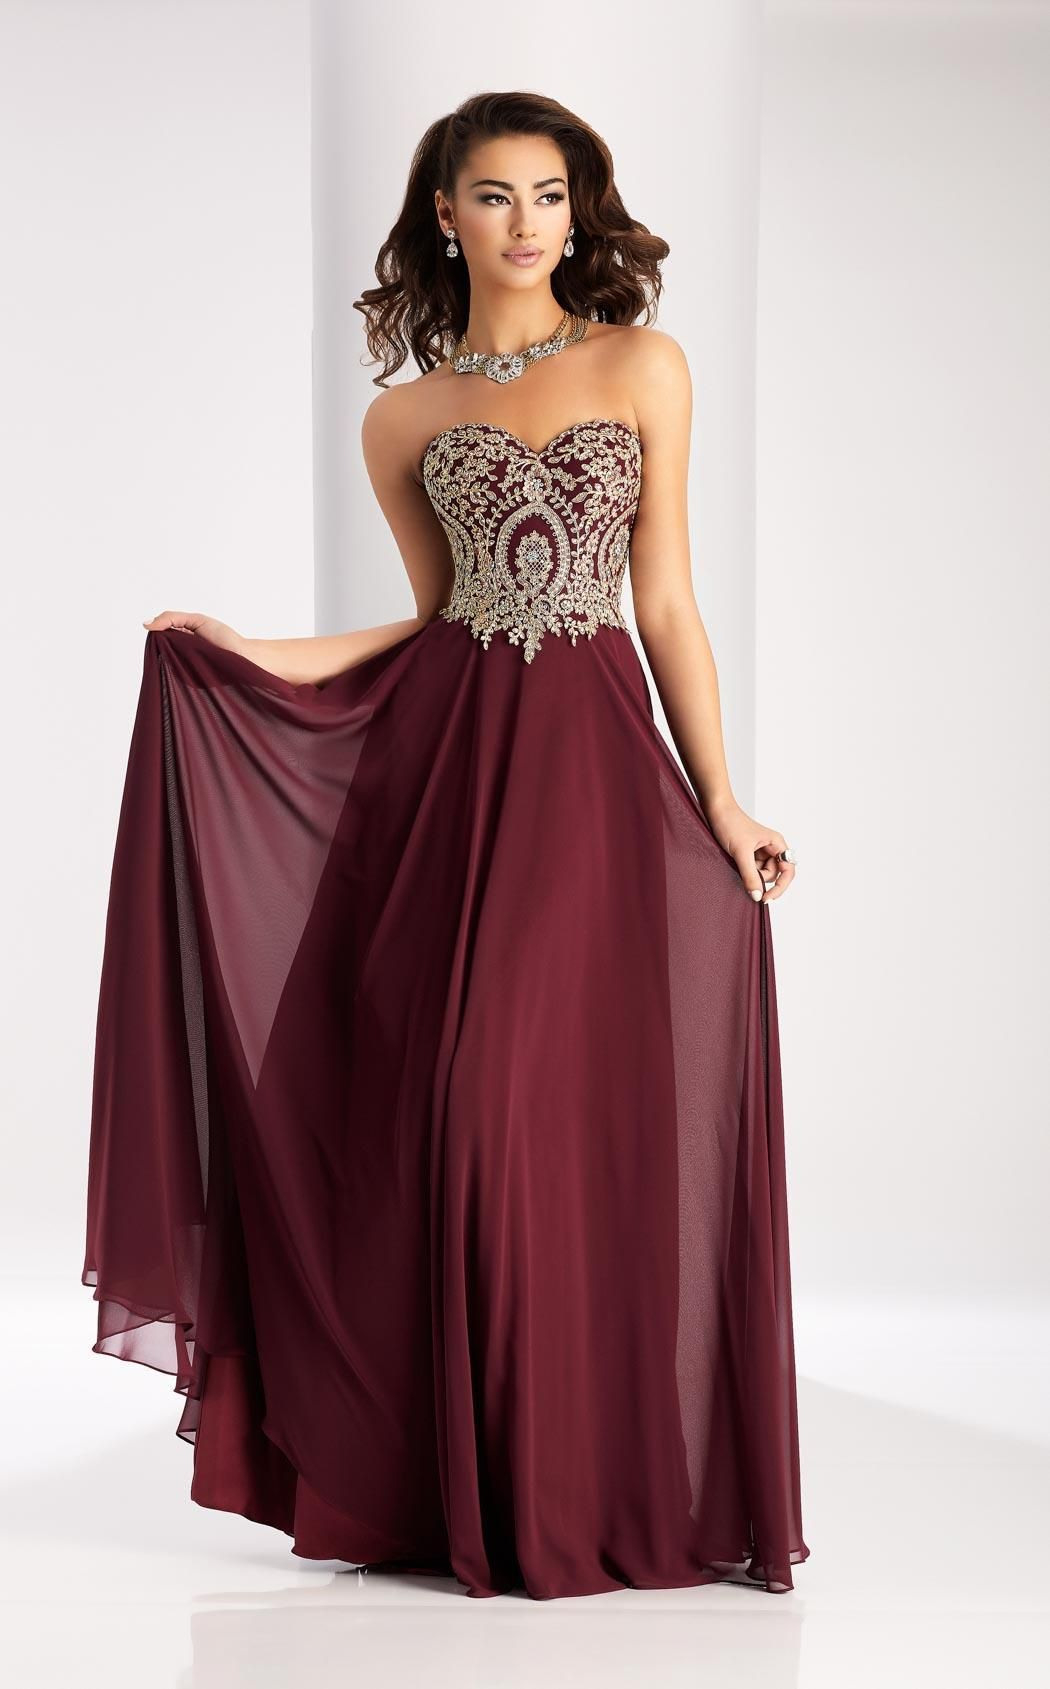 Top Abendkleid Bordeaux Lang Design - Abendkleid